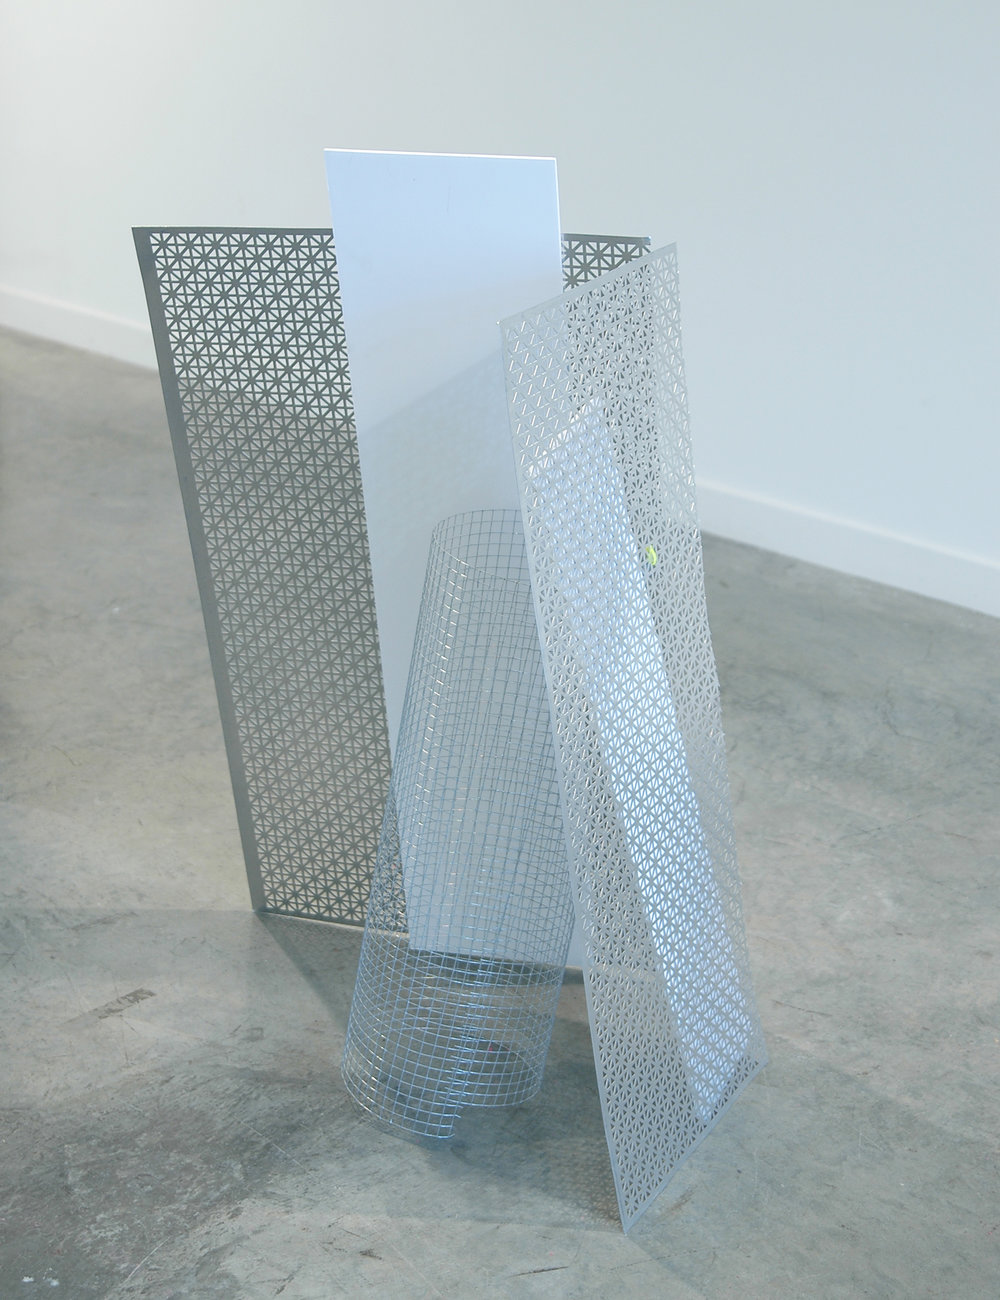 "ALICE CATTANEO   Forma cercata per non cercarla,  2013, foam board, iron netting, cable ties, perforated aluminium, 39"" x 22"" x 16"""